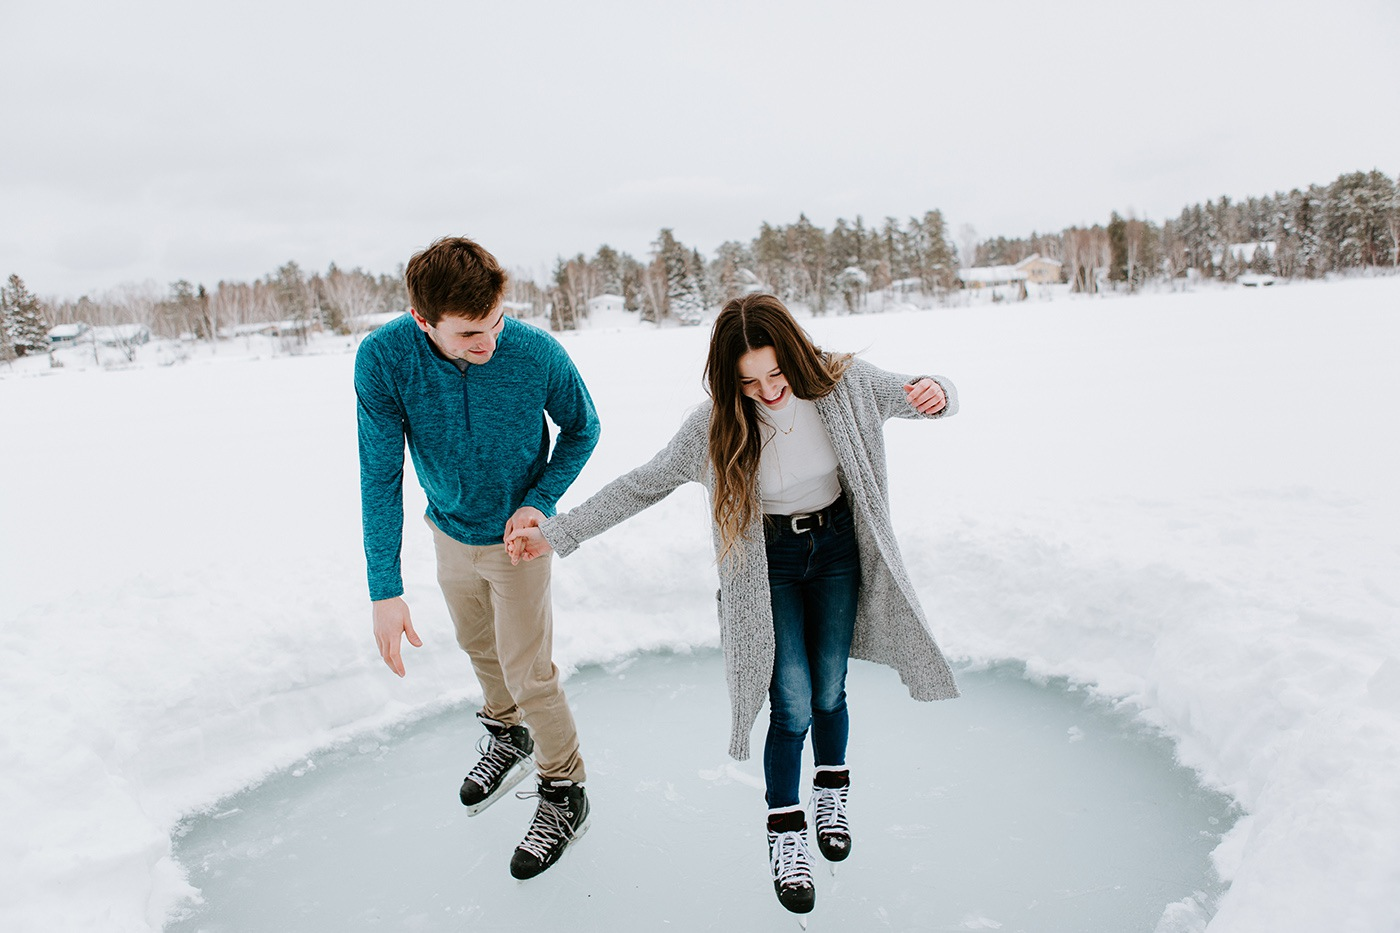 Ice skating engagement photos on a lake. Winter engagement photos. Winter engagement session. Ice skating couple photos. Photos de couple en patin sur un lac. Séance de fiançailles à Montréal. Photographe de fiançailles à Montréal. Montreal engagement photographer. Lac Docteur Saint-Honoré Chicoutimi